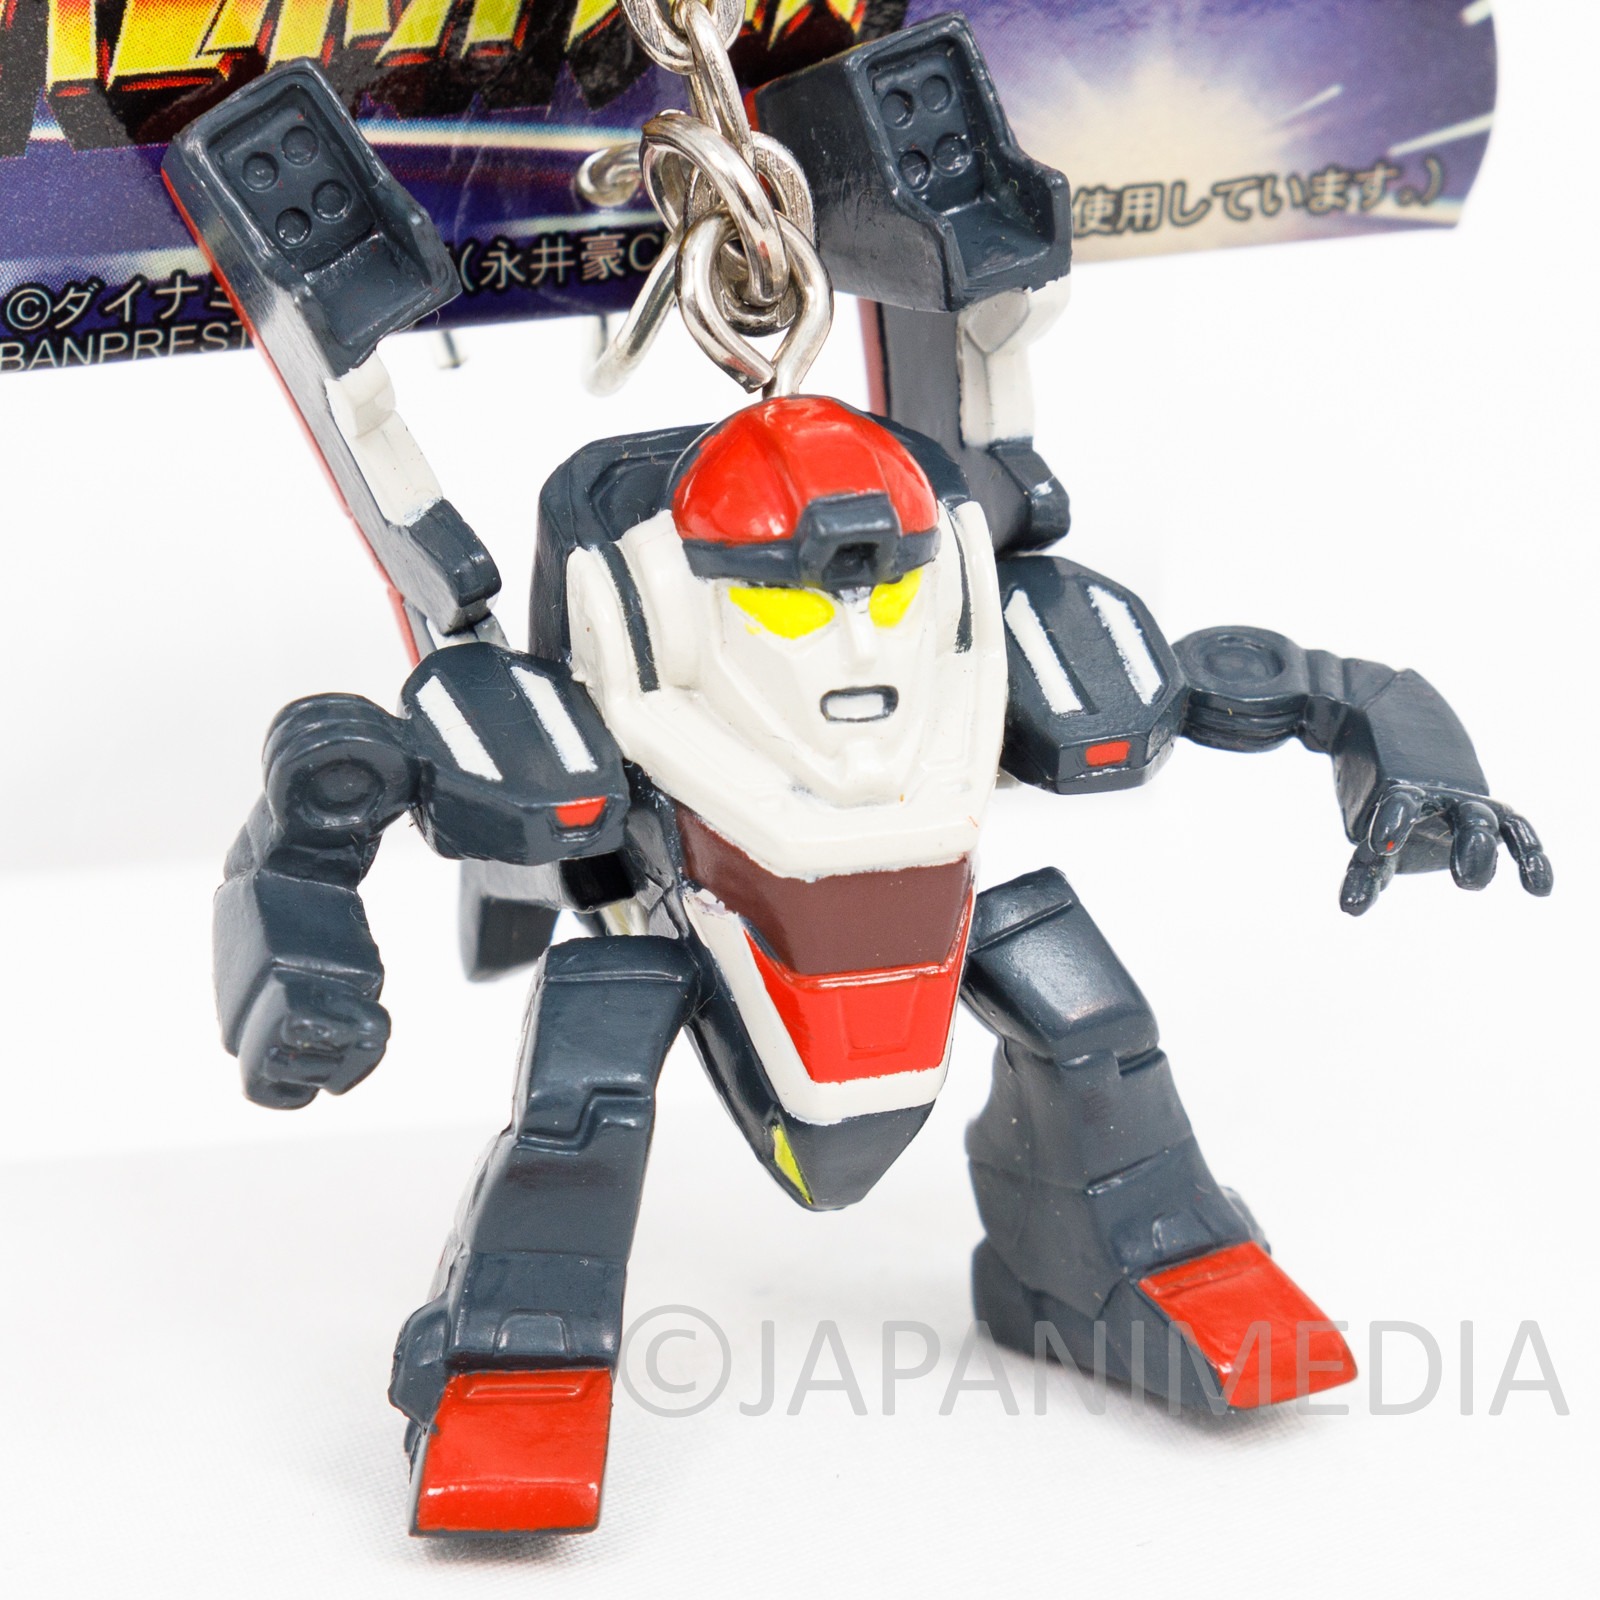 Super Beast Machine God Dancoug Eagle Fighter H Robot Wars Figure Key Chain